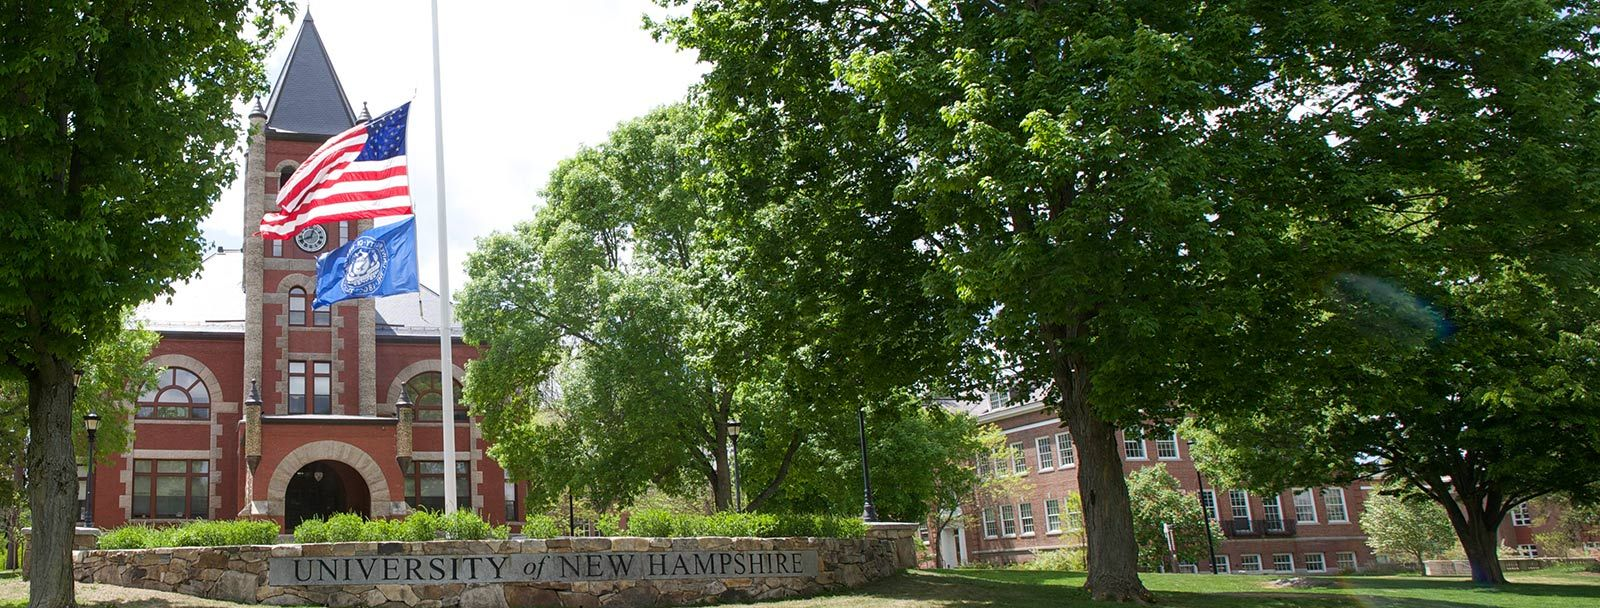 University of New Hampshire in Durham